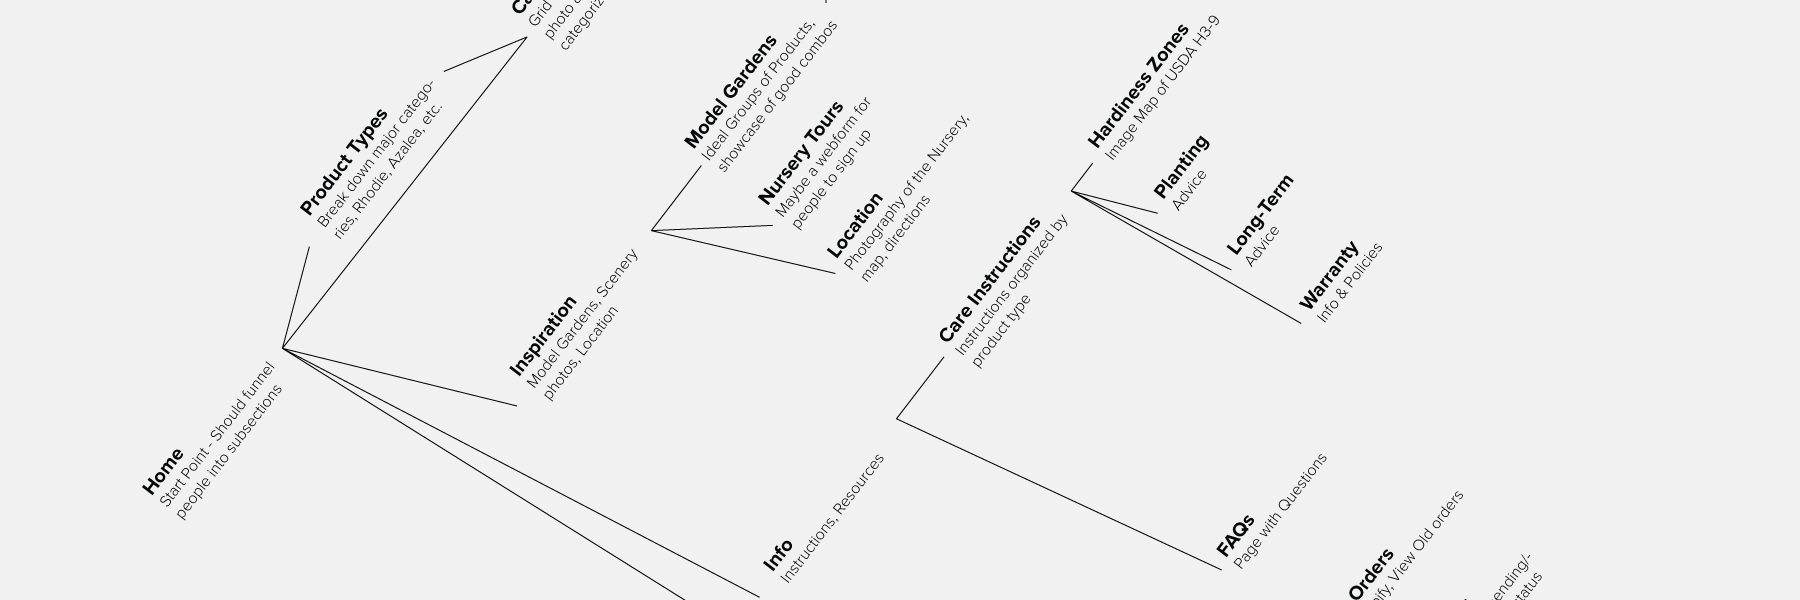 Site Map displaying Research and site organization for Singing Tree Gardens